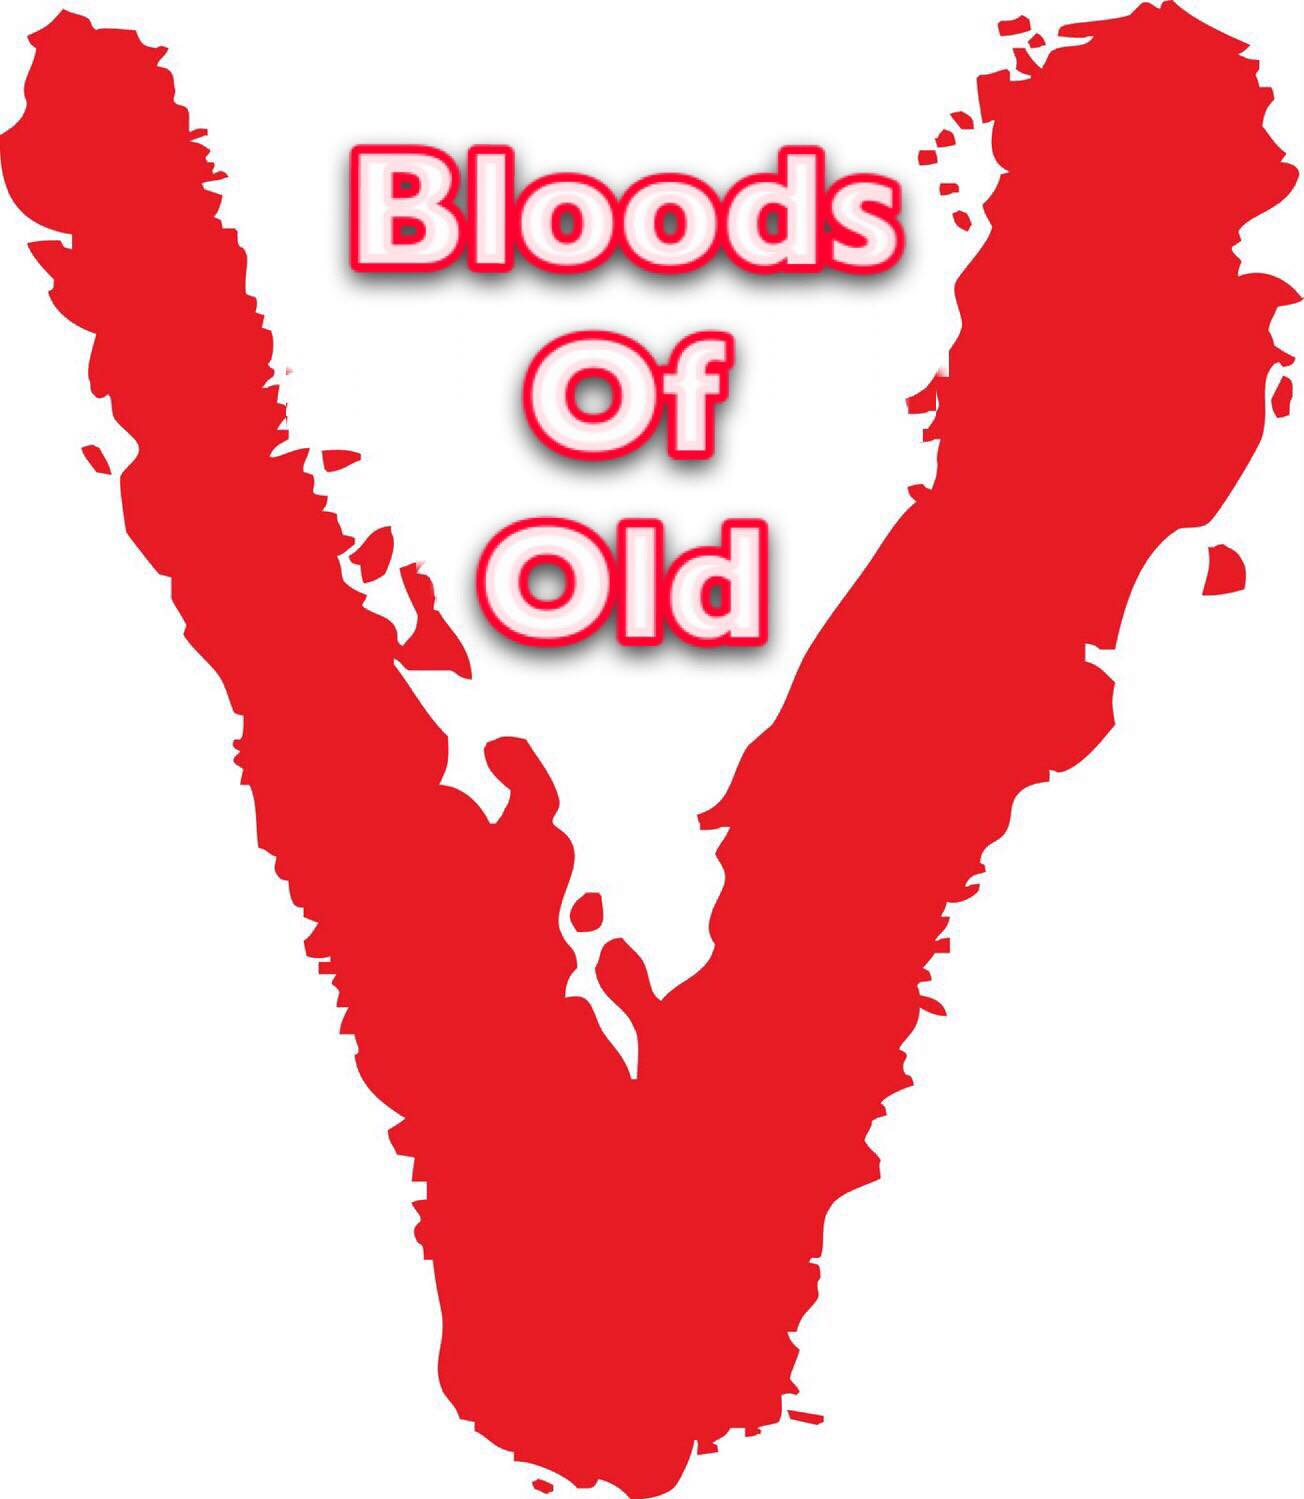 Bloods Of Old